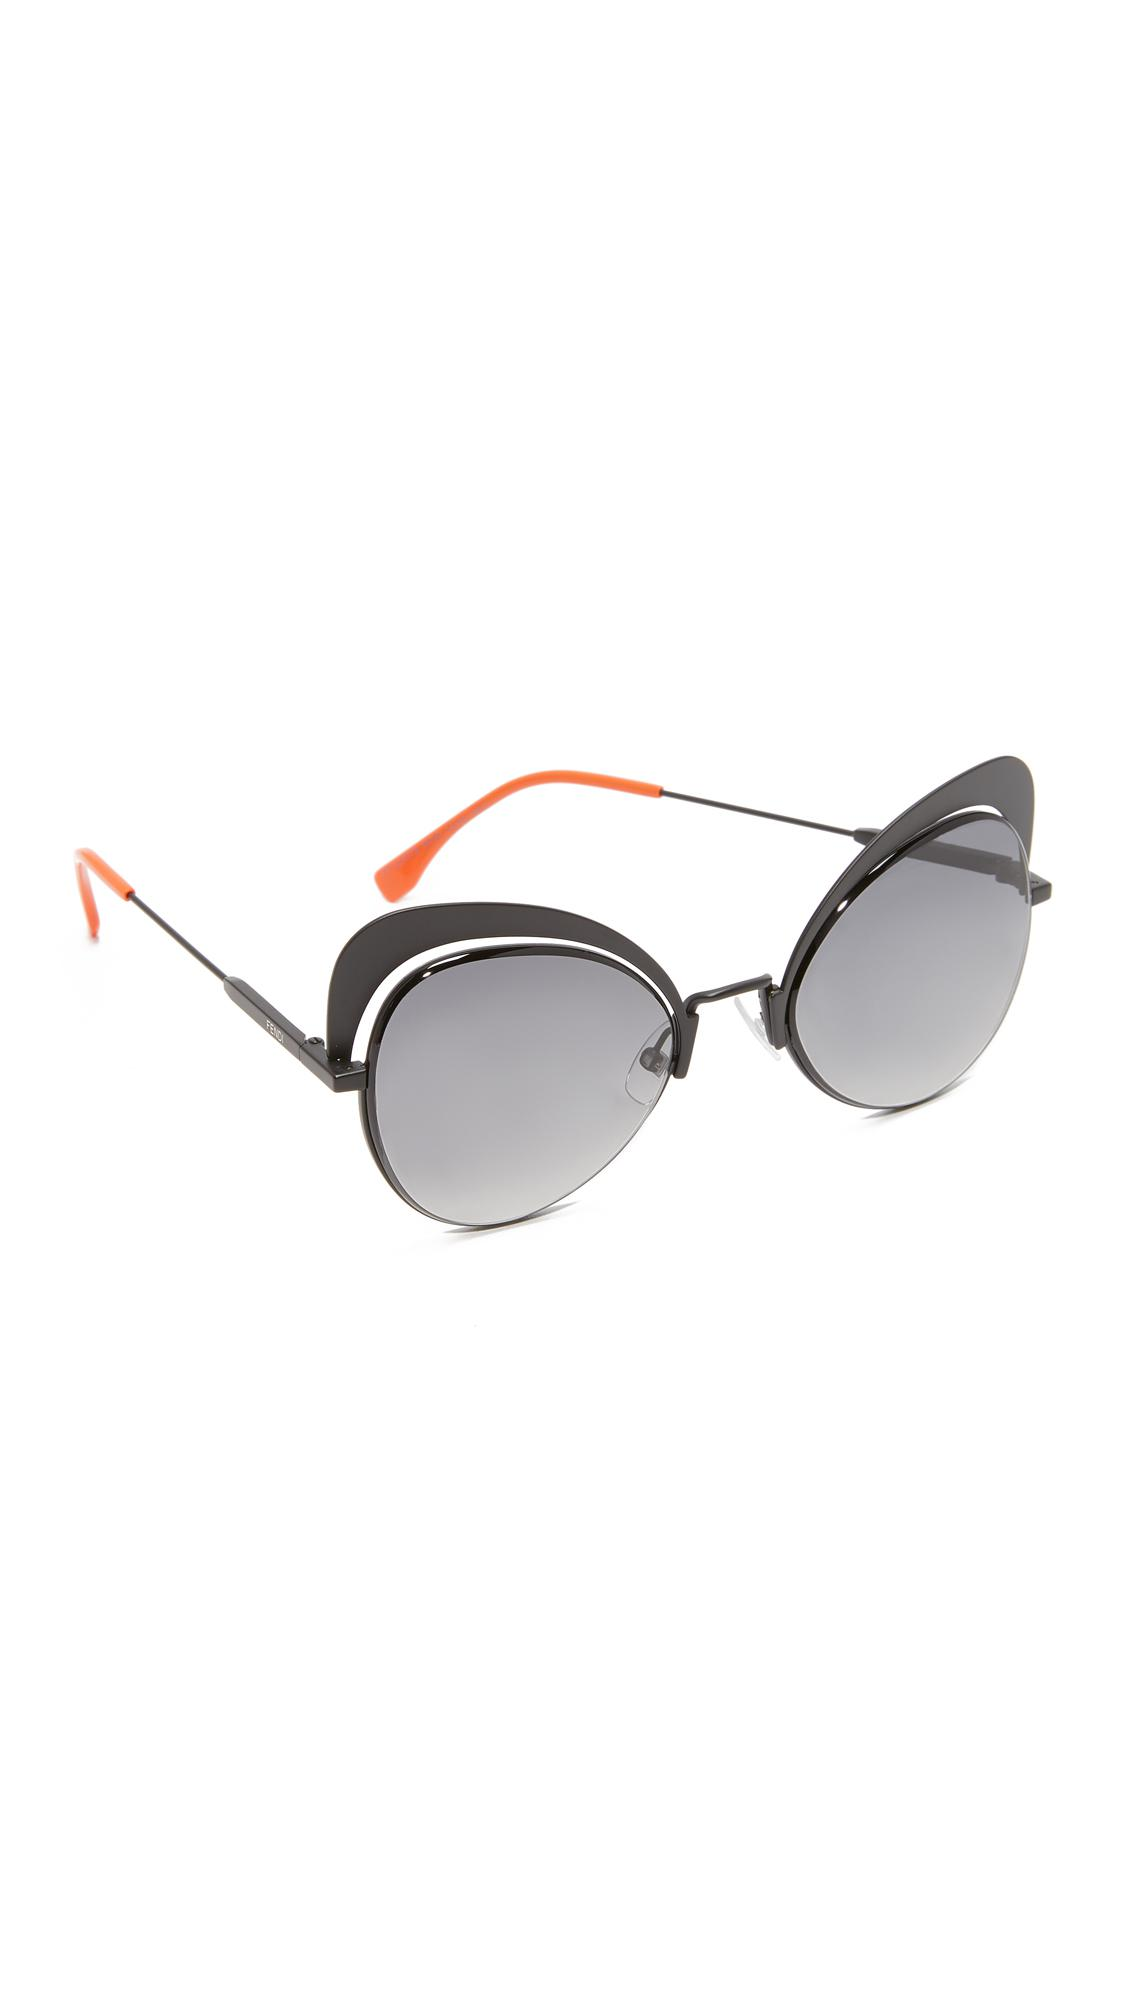 2a9e6bb58b6 Gallery. Previously sold at  Shopbop · Women s Cat Eye Sunglasses